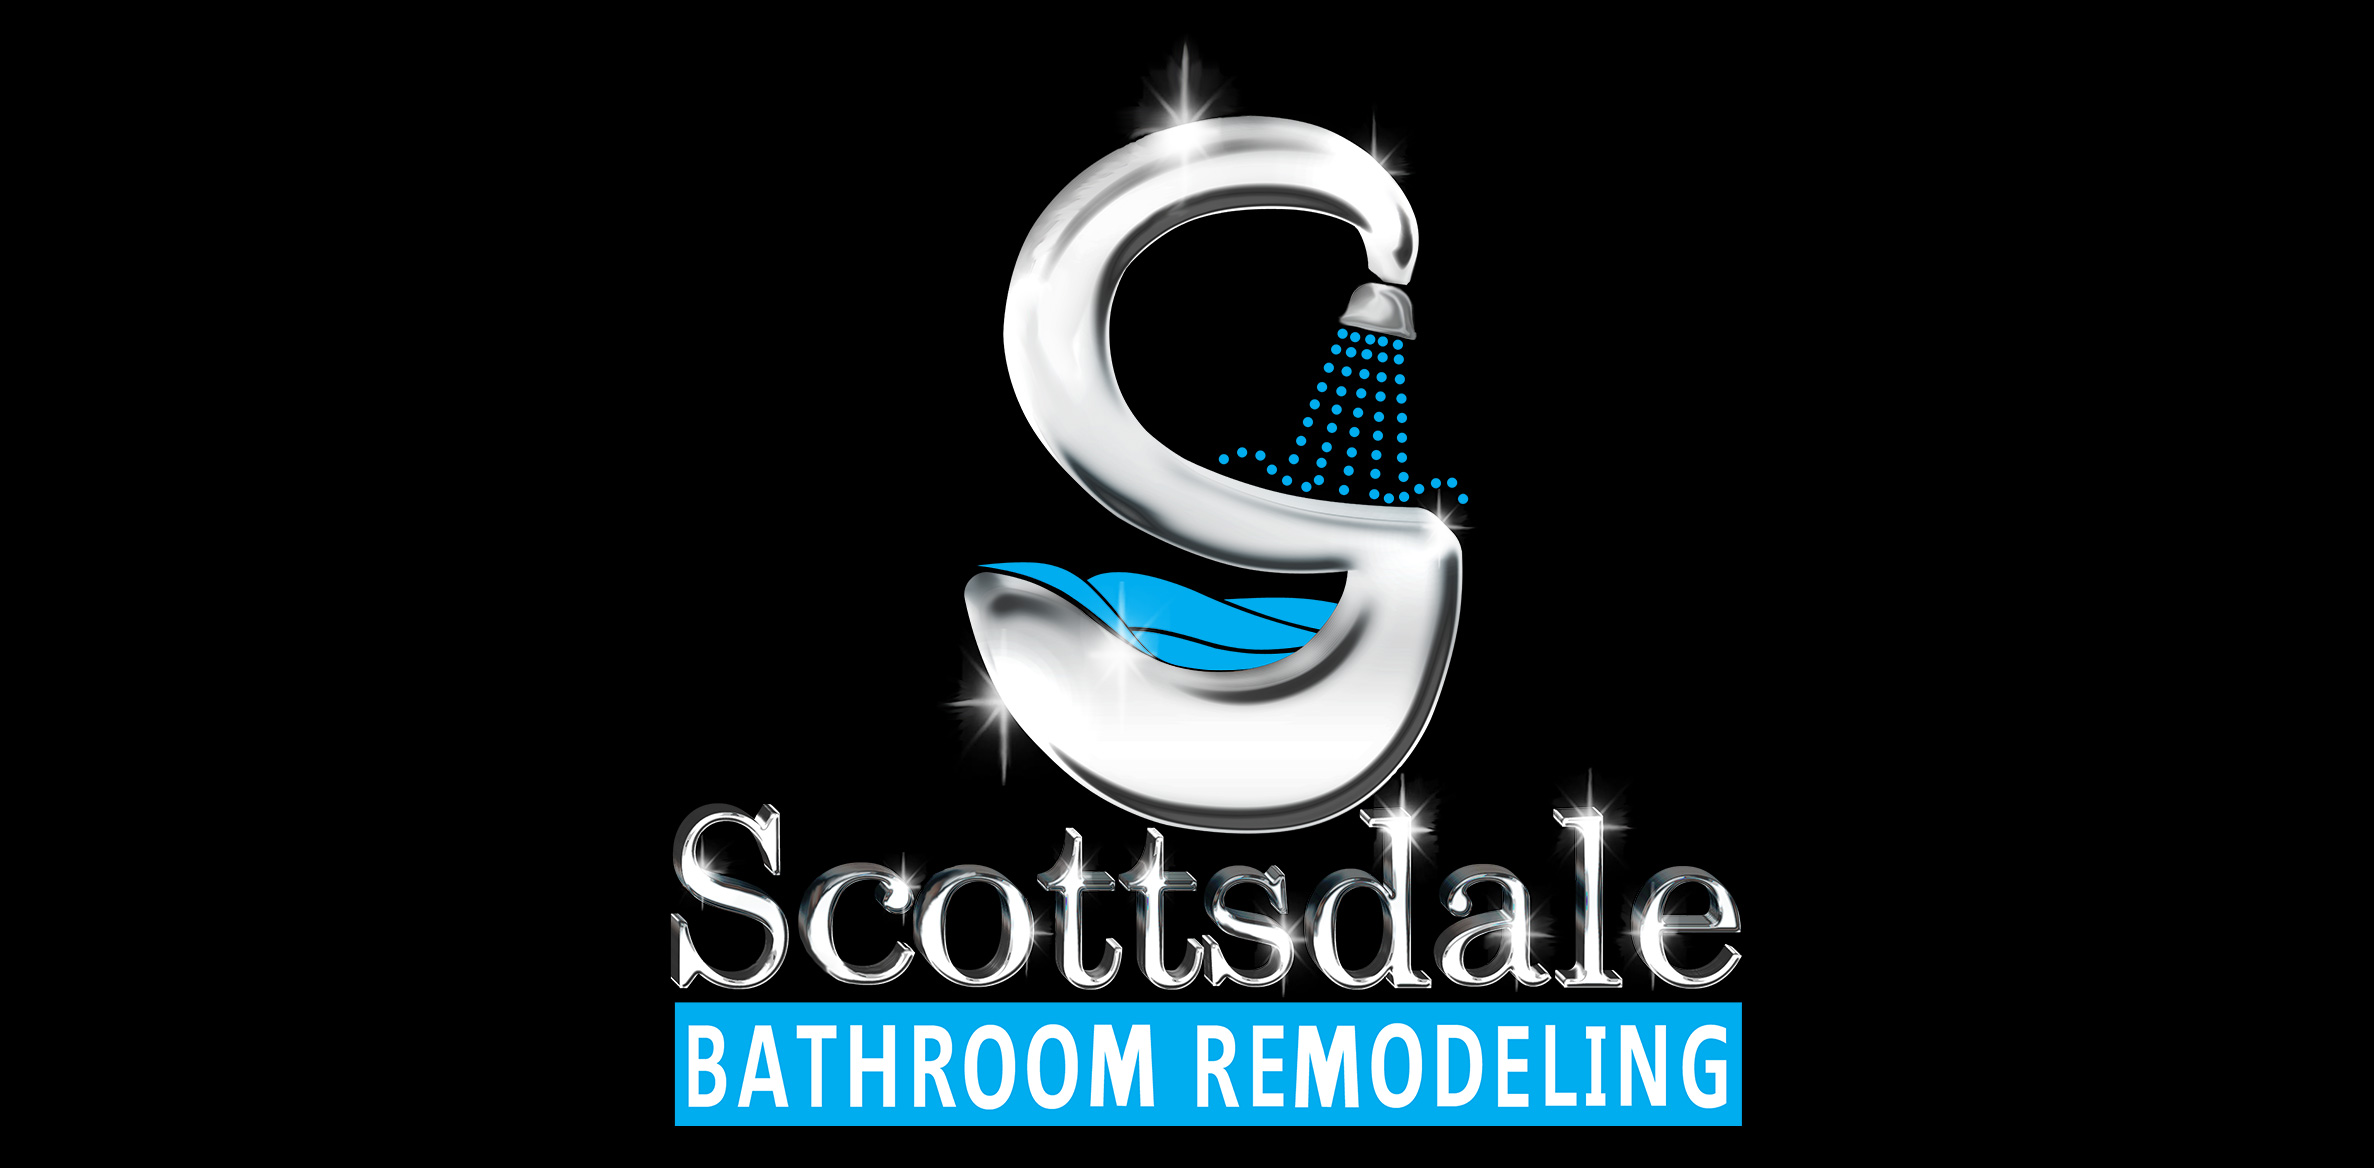 Design Studio  Don t hire just anyone  Scottsdale Bathroom Remodeling. Scottsdale Bathroom Remodeling